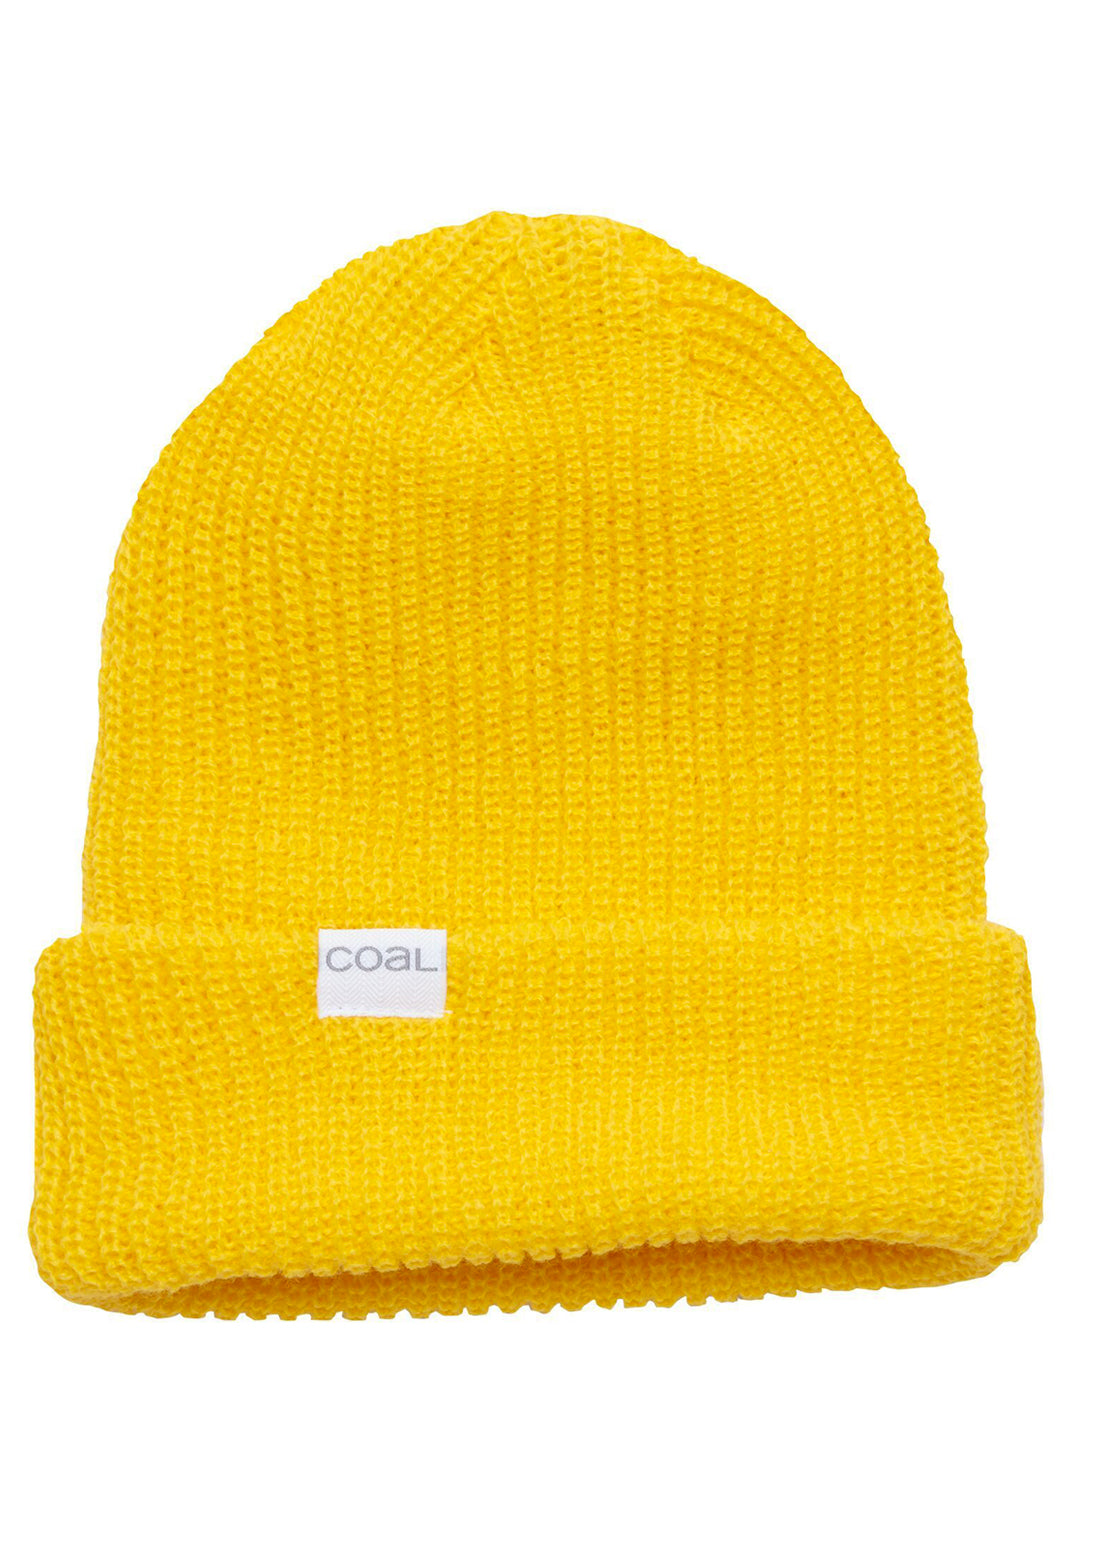 Coal The Stanley Beanie Yelow